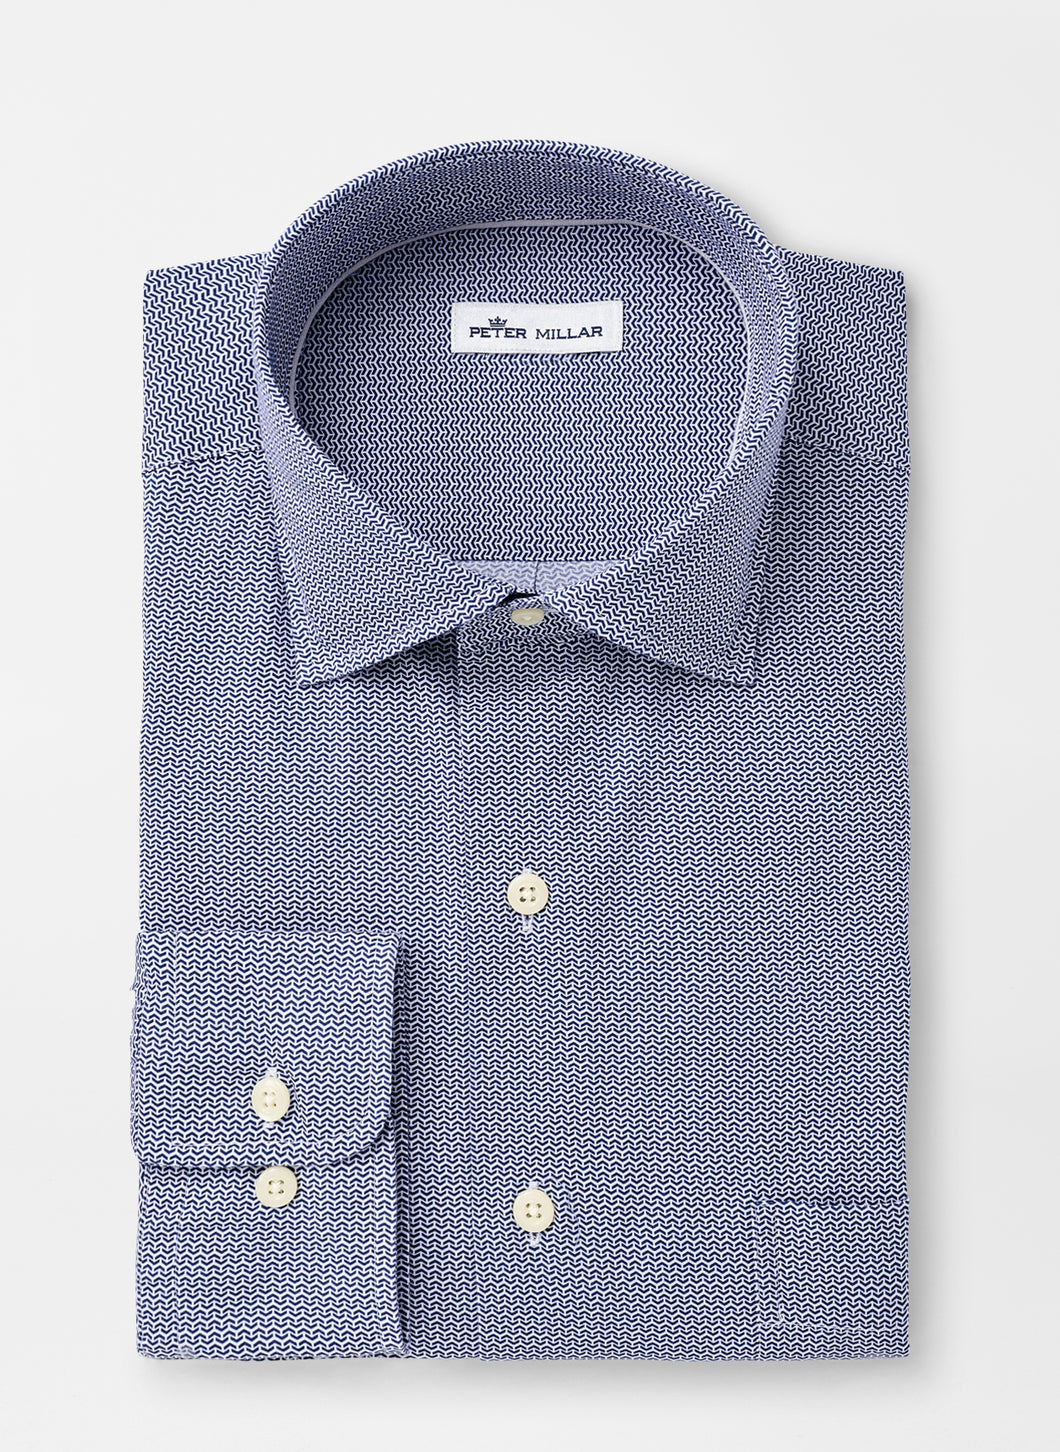 Peter Millar Chevron Brick Cotton-Blend Sport Shirt in Navy